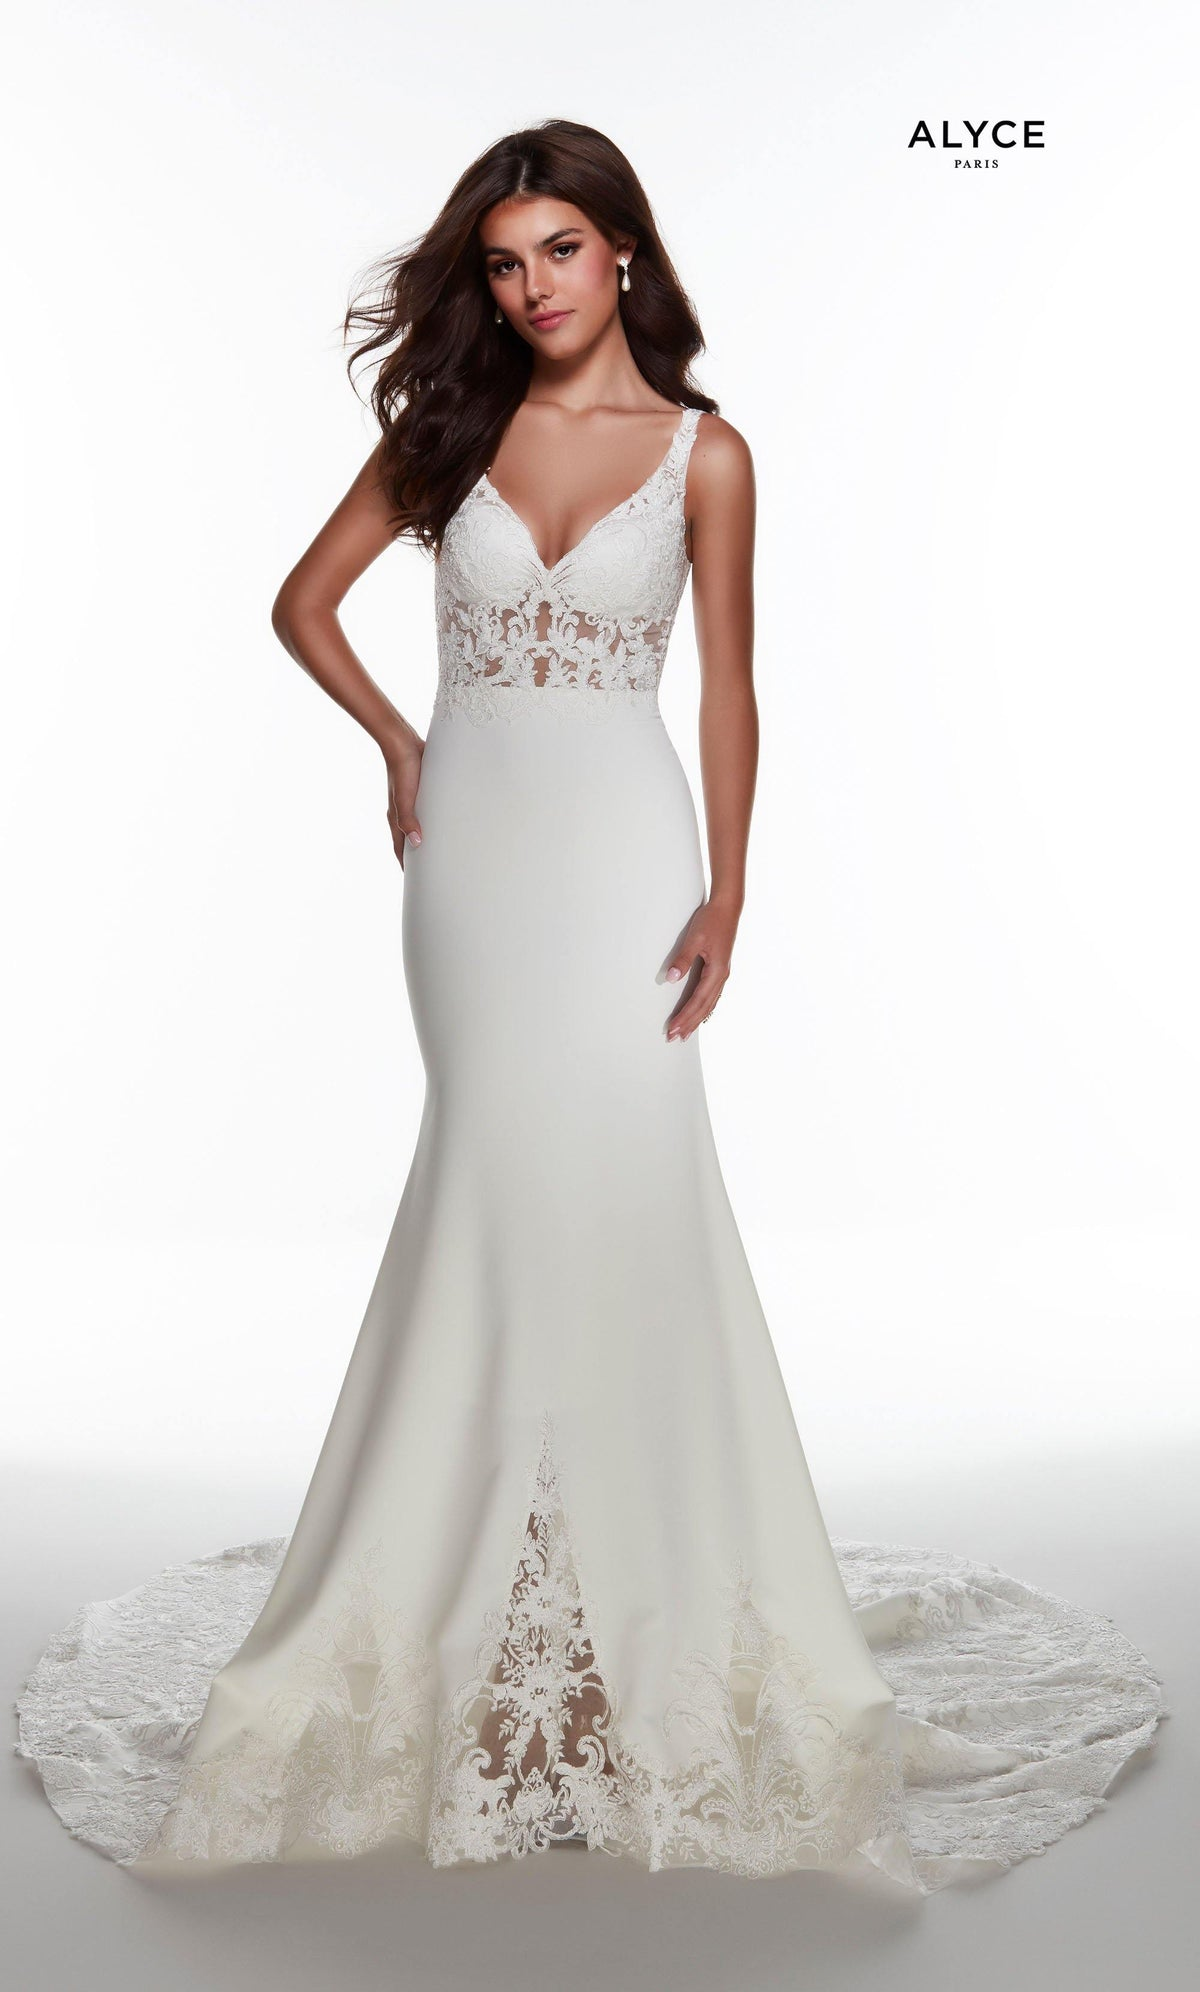 Ivory mermaid wedding dress with a V neckline and sheer lace accents